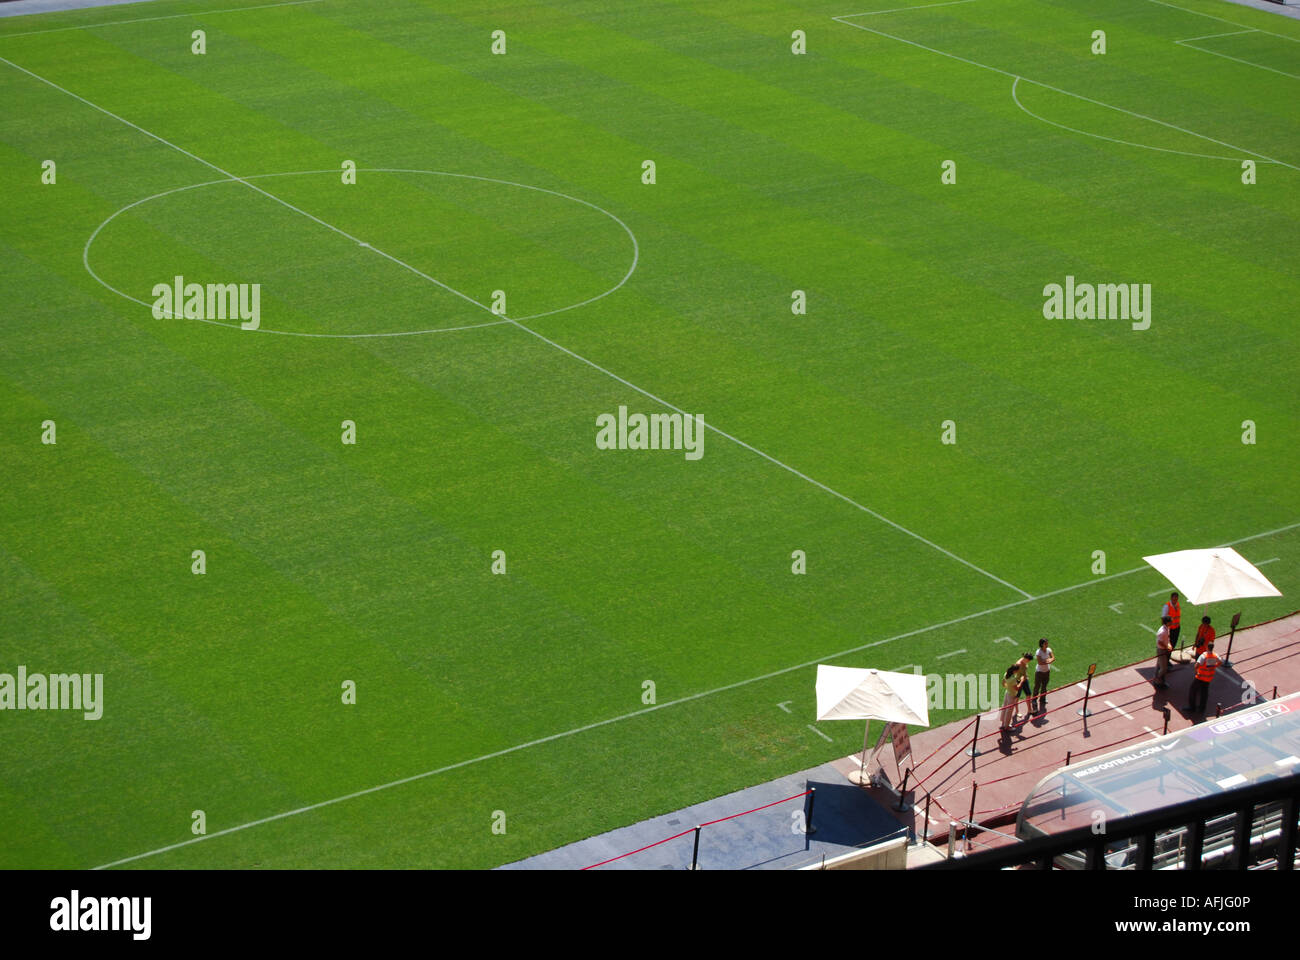 detail of lawns of Barcelona football stadium Spain - Stock Image